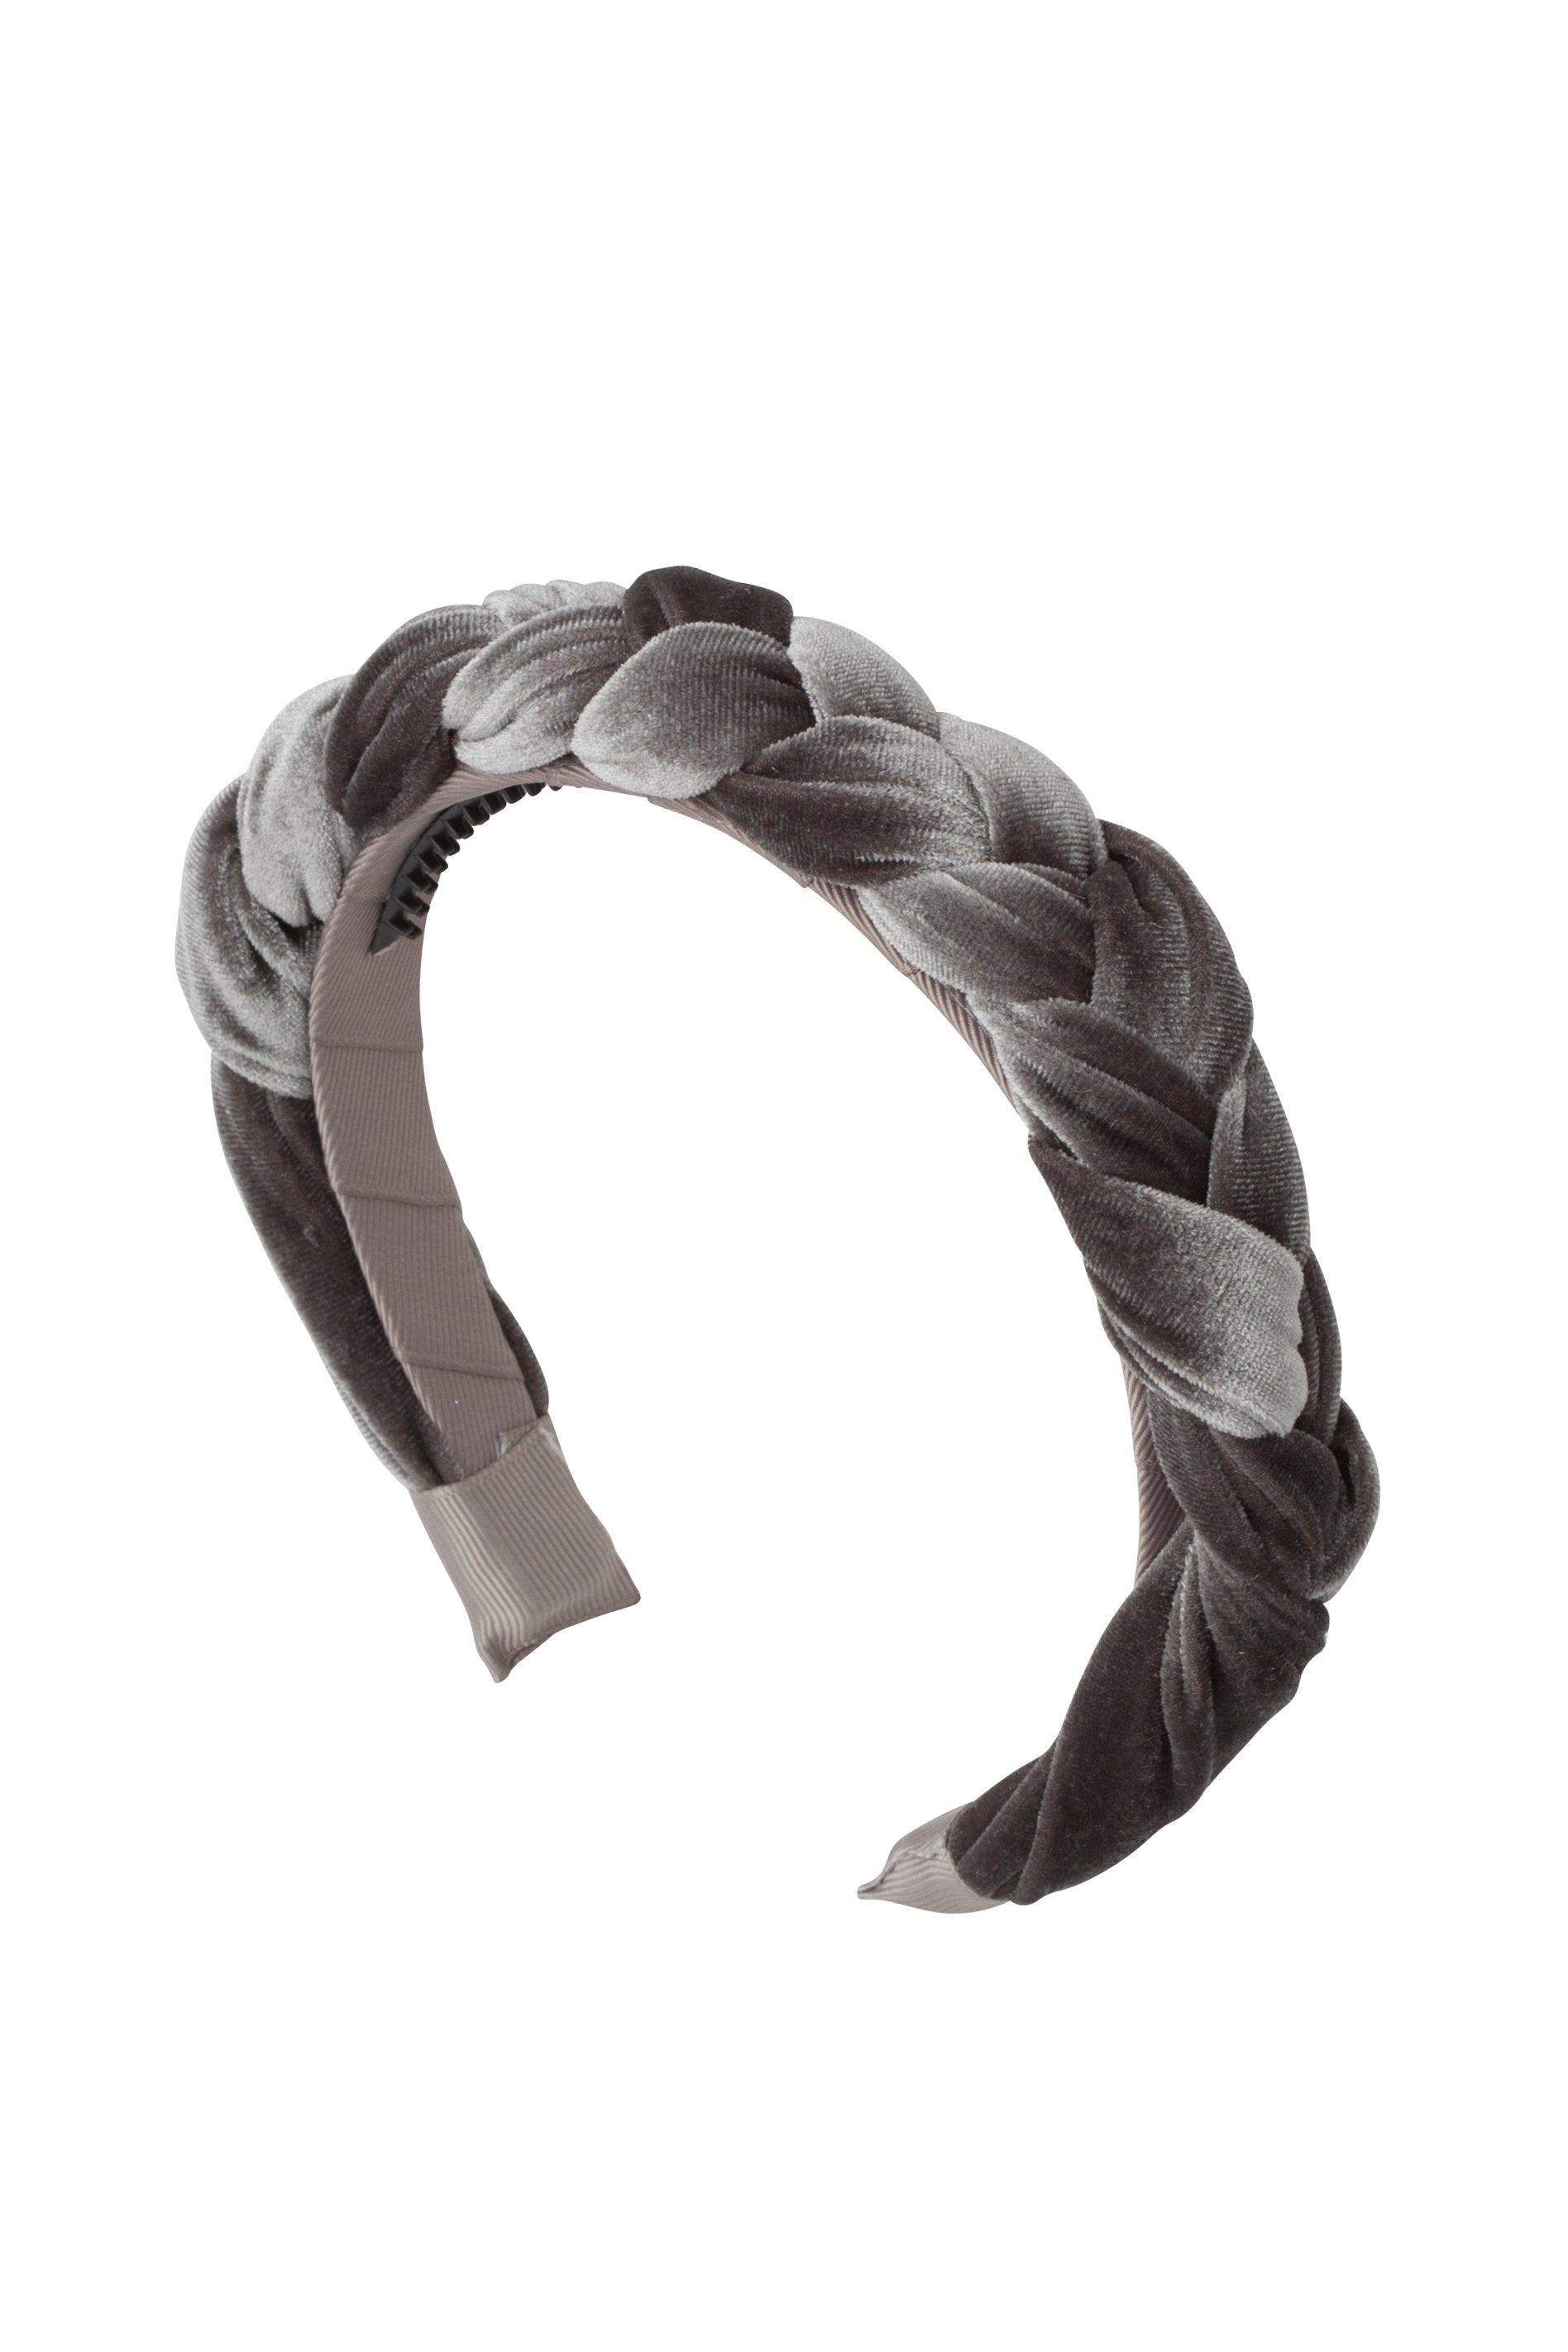 Coronation Day Headband - Grey Velvet - PROJECT 6, modest fashion